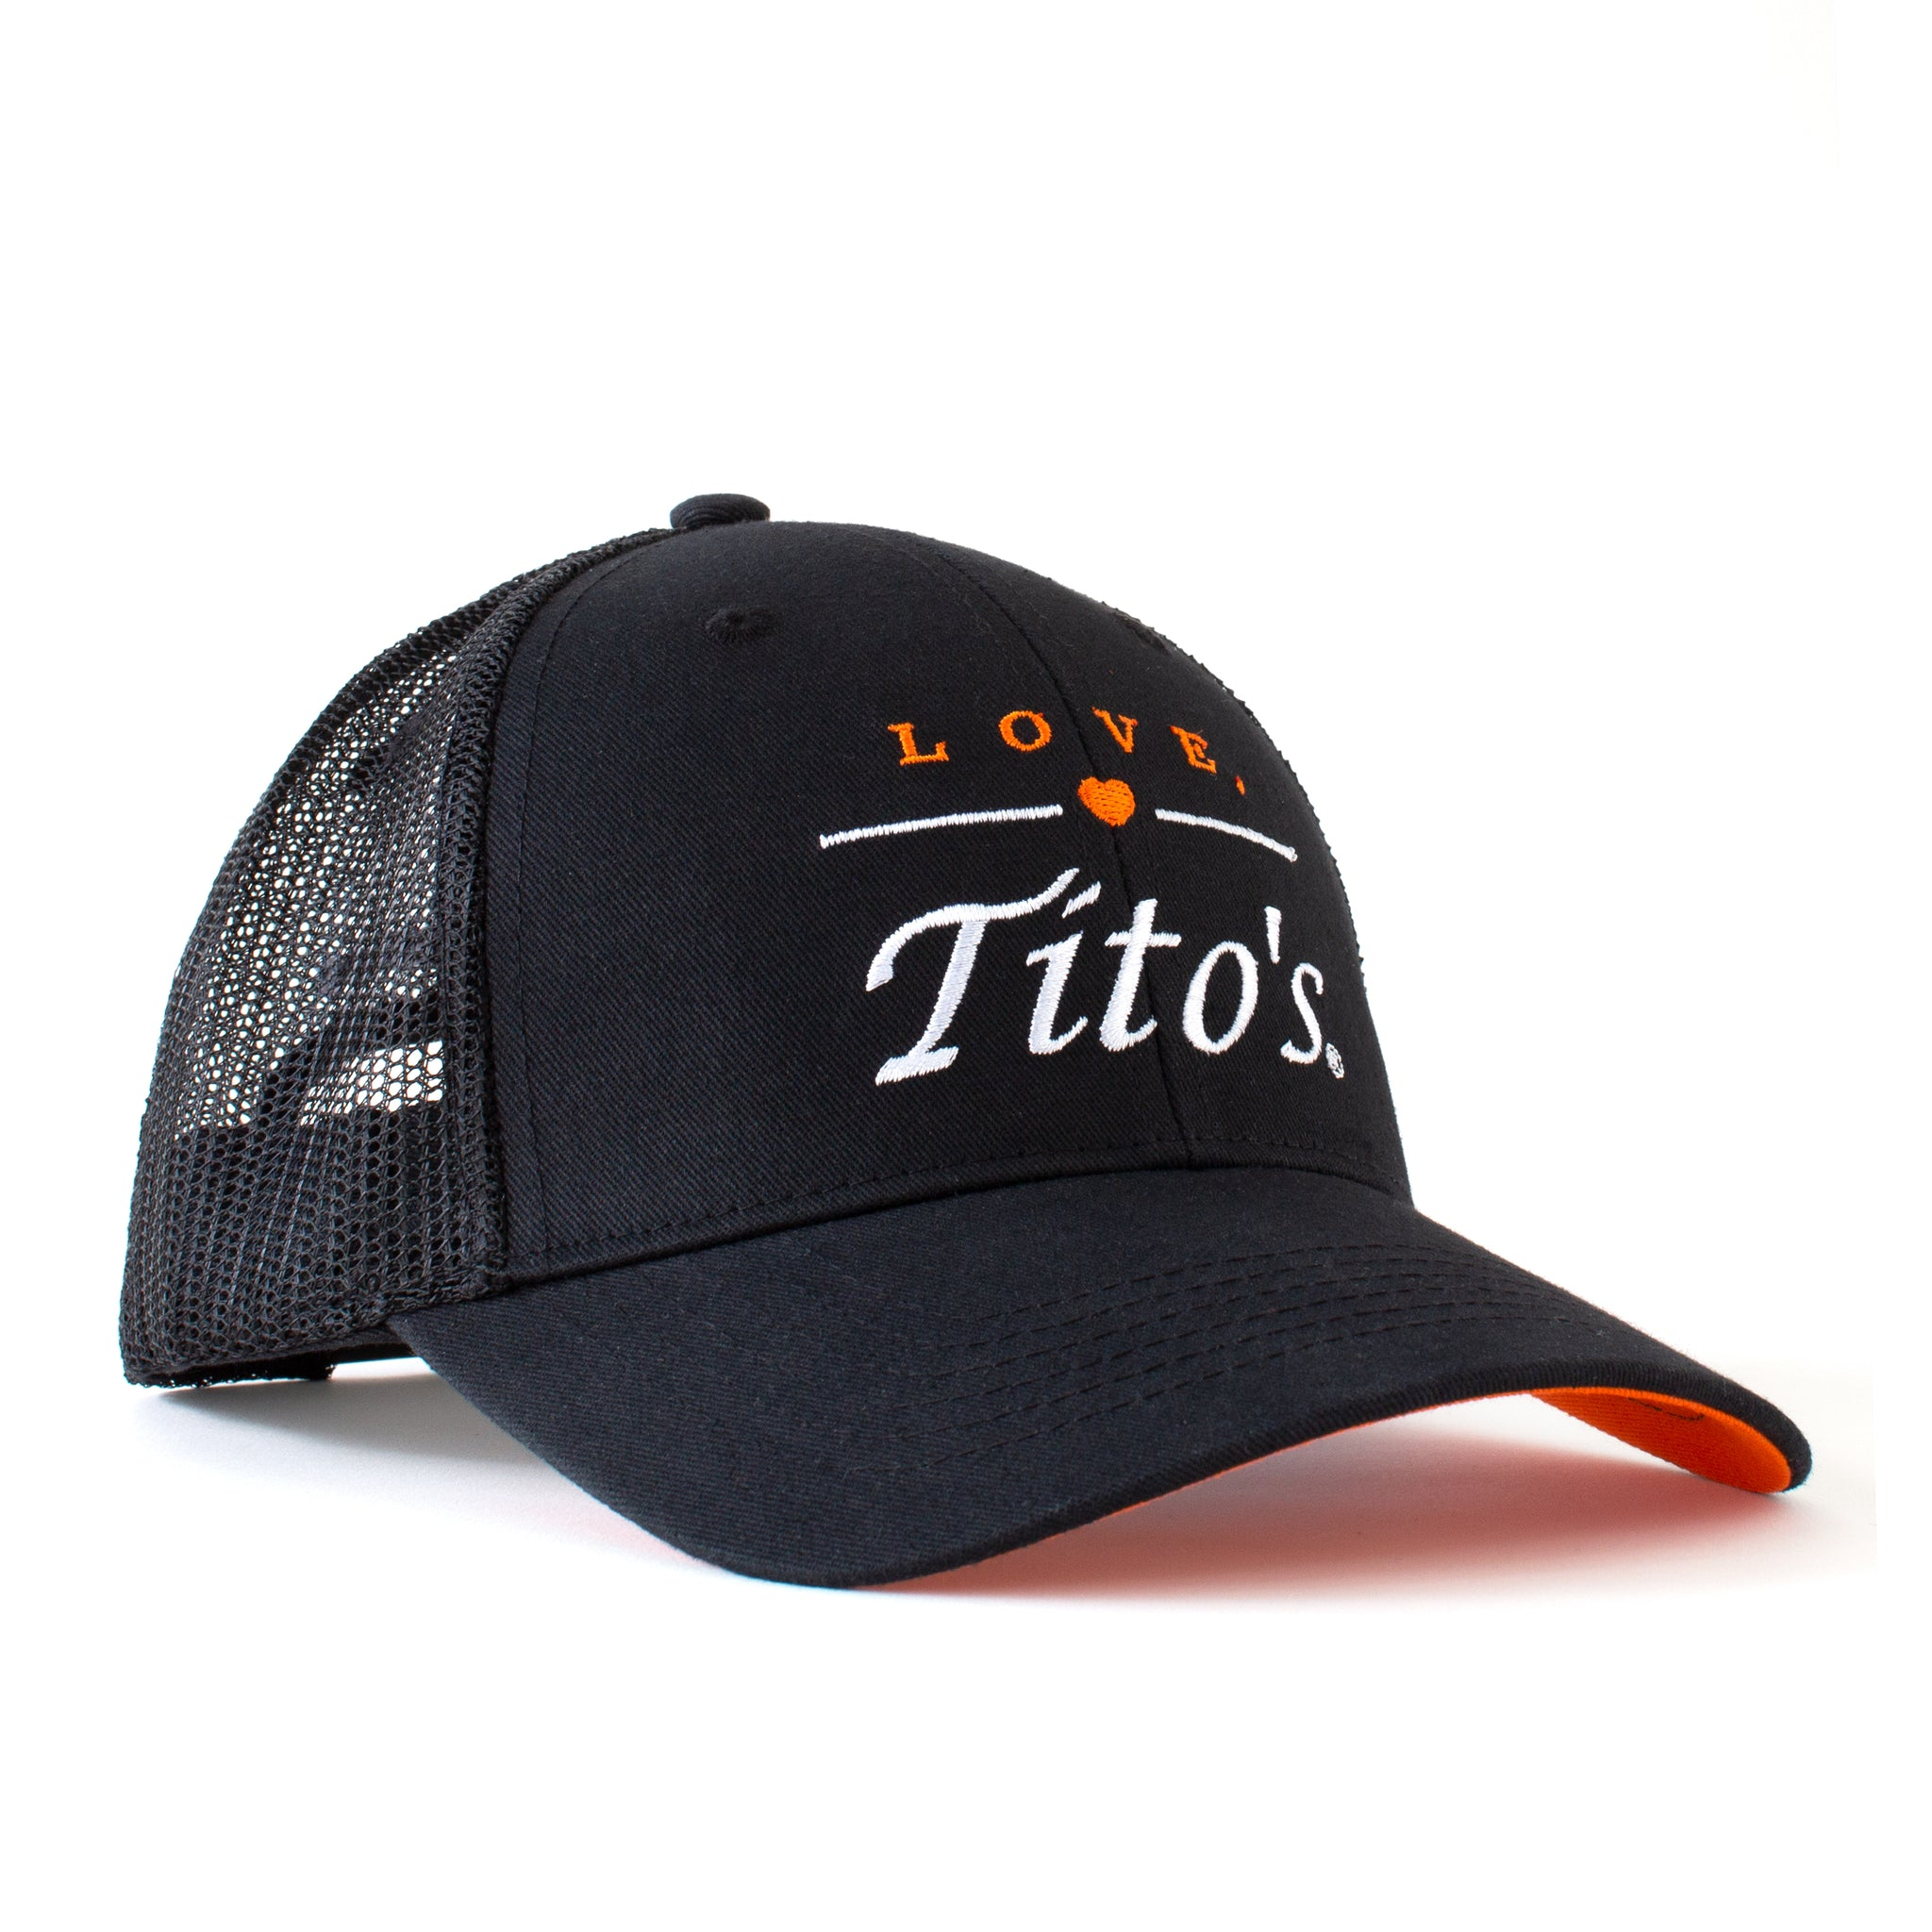 Front view of black trucker hat with embroidered Love, Tito's logo